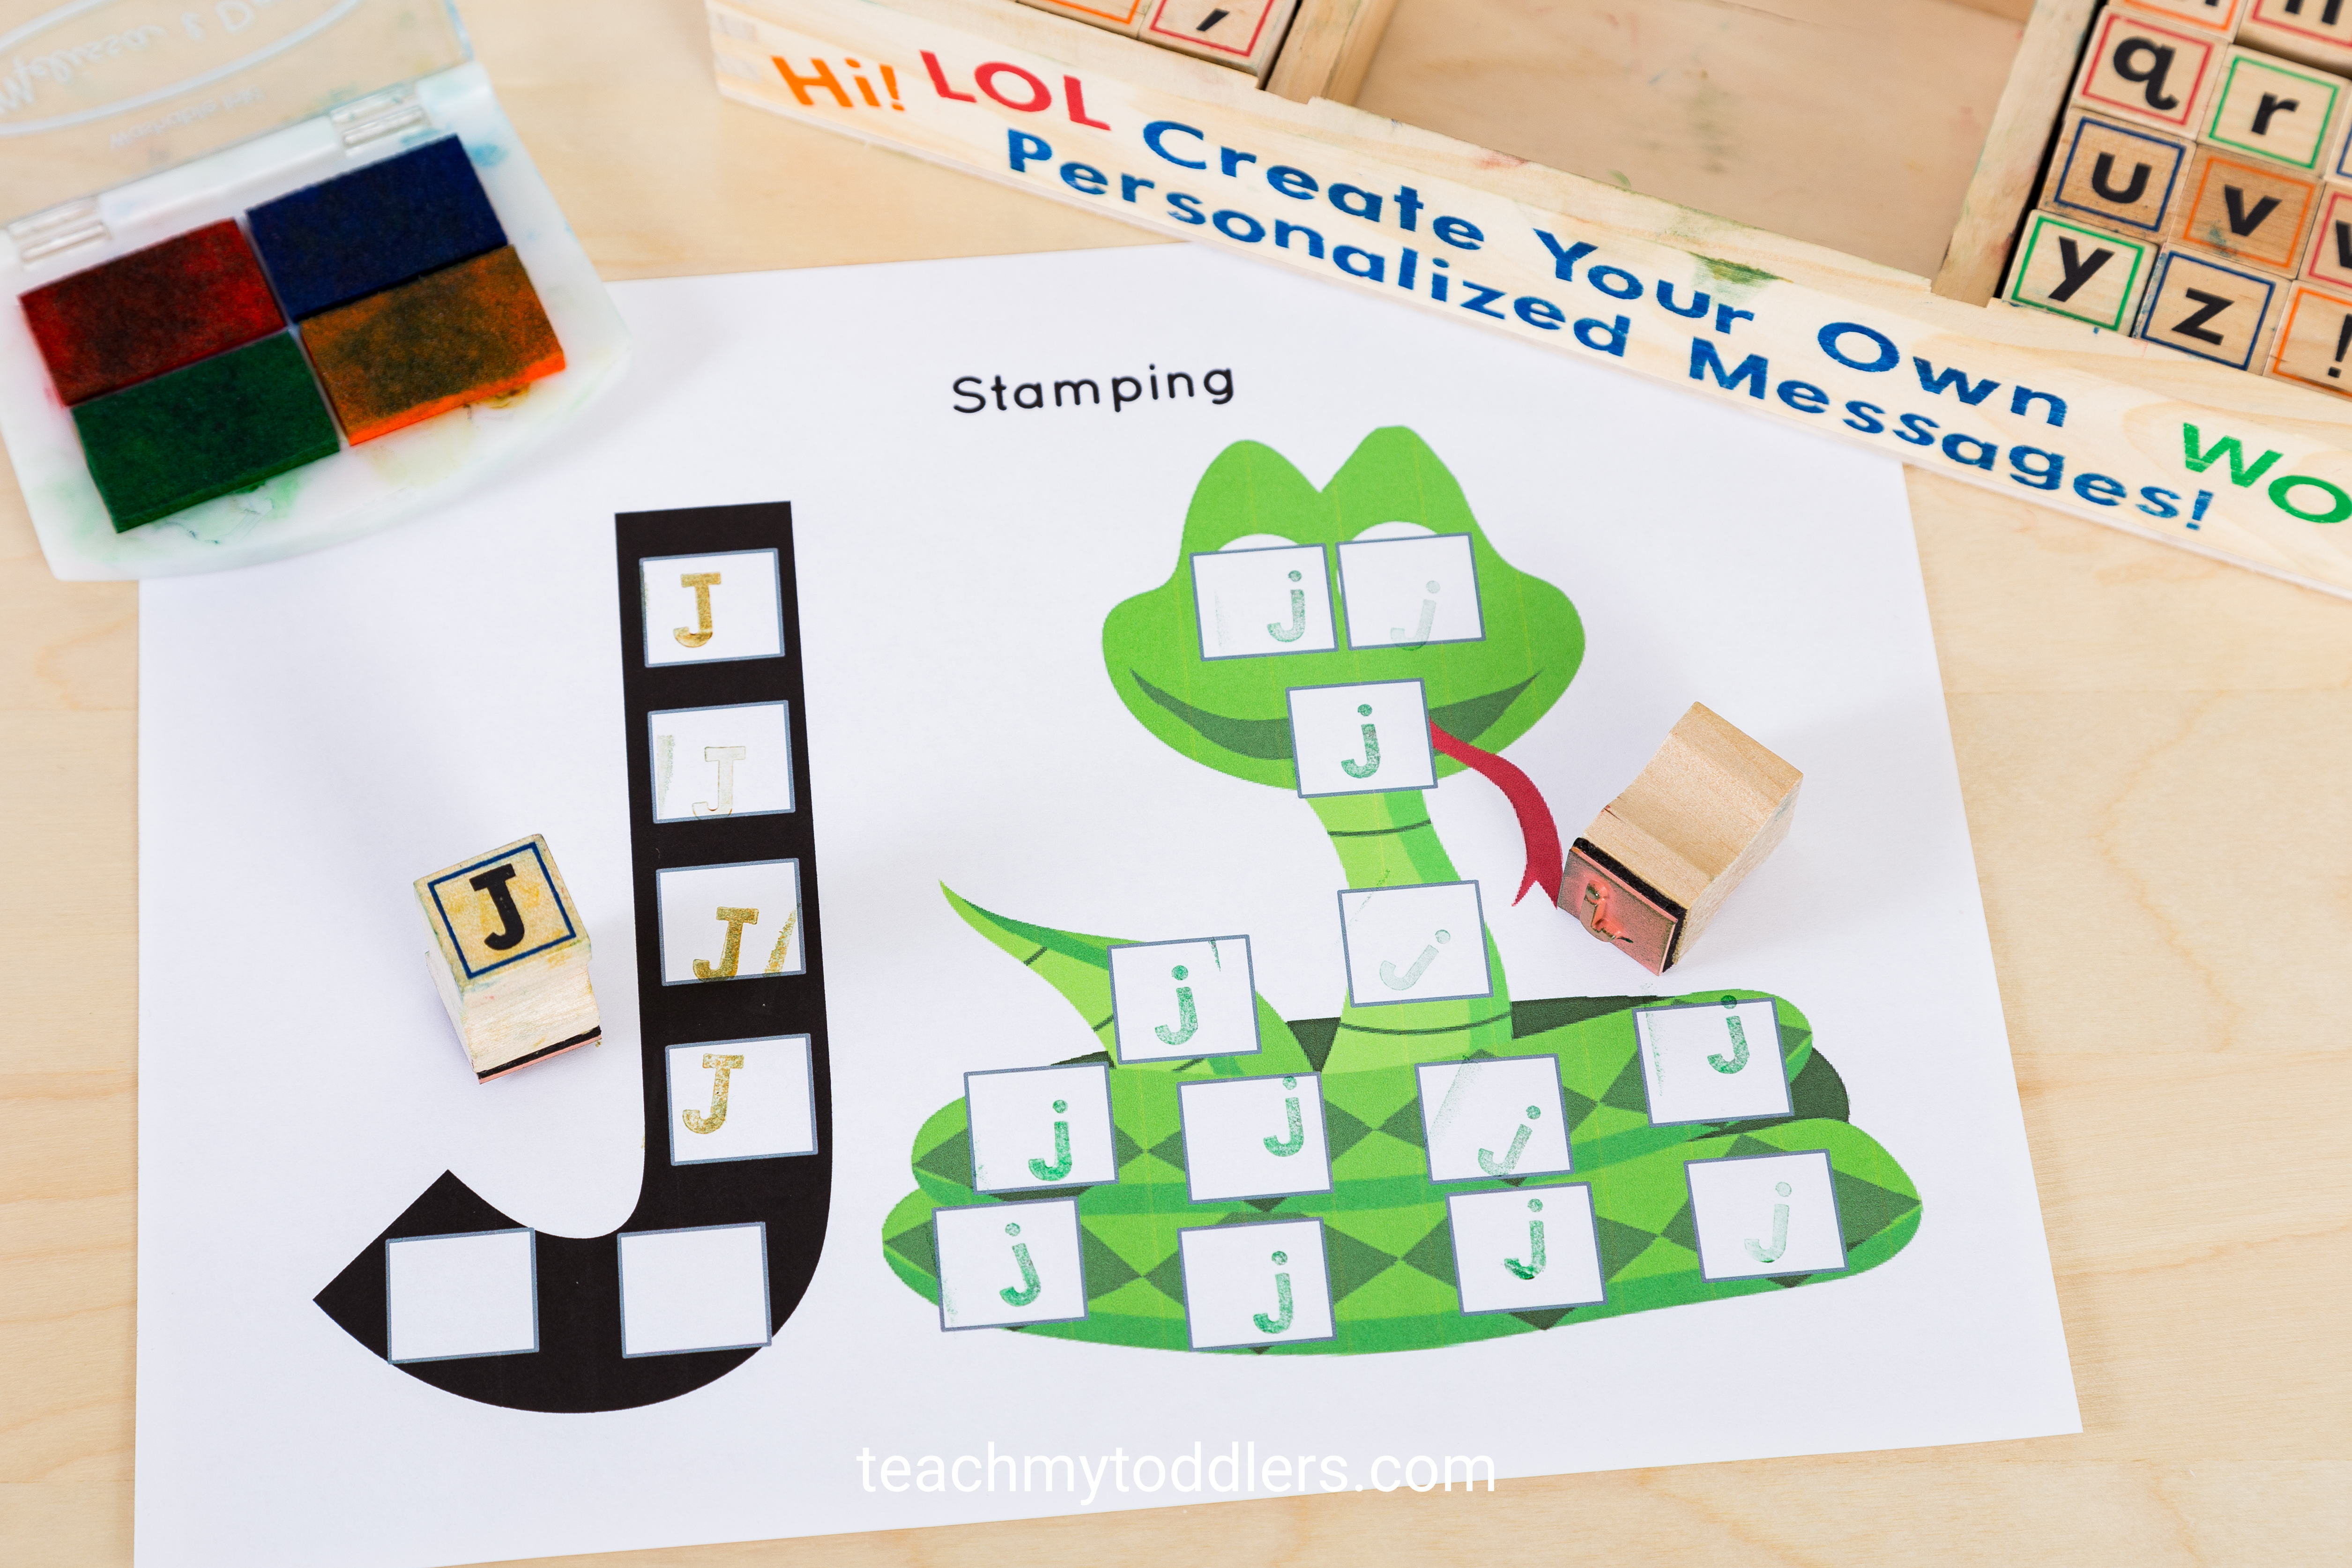 These alphabet stamps are a fun way to teach toddlers letters